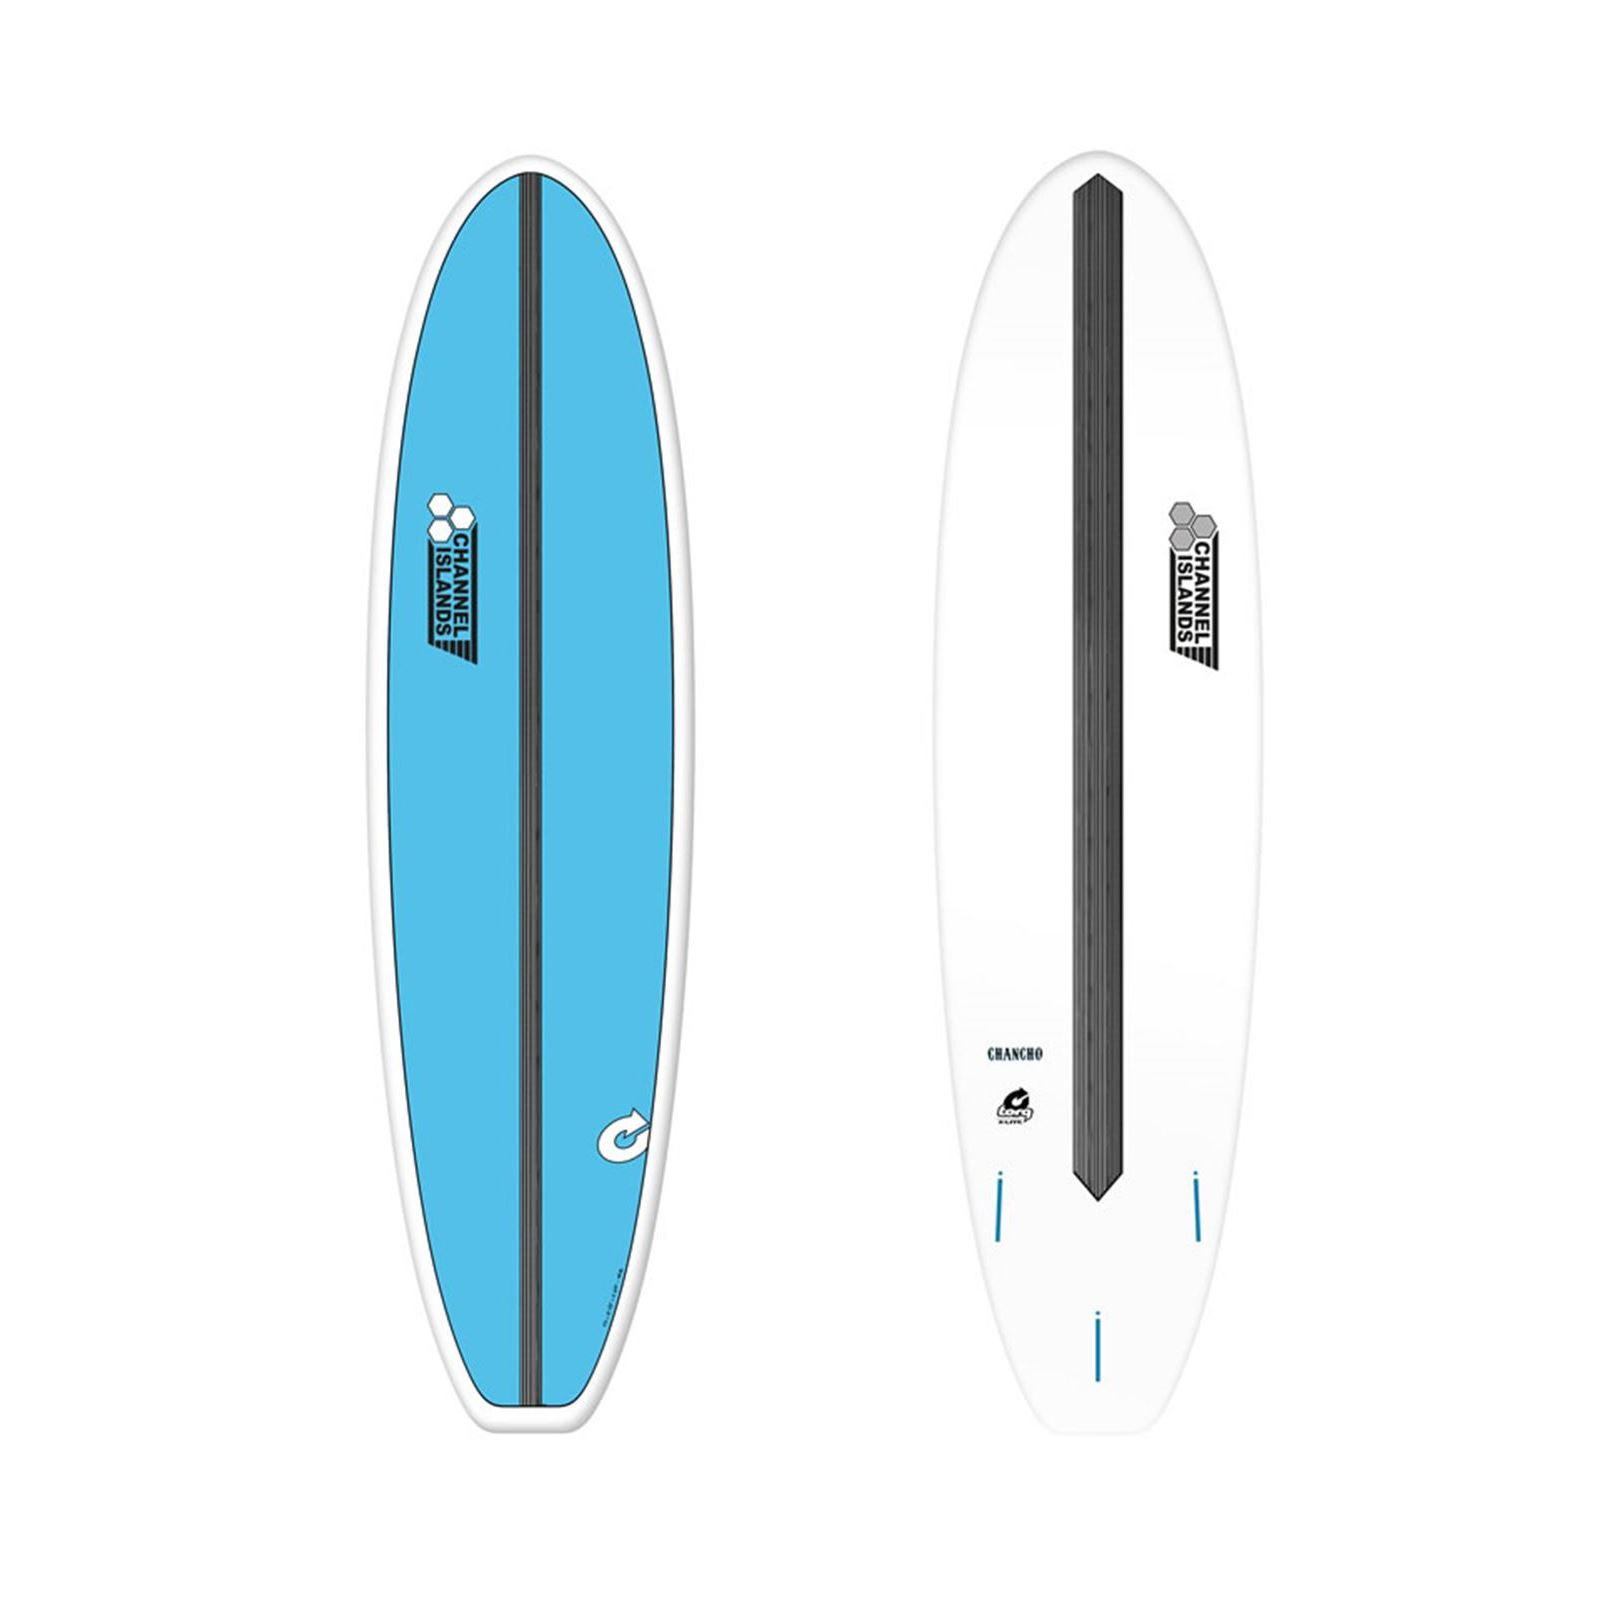 Surfboard CHANNEL ISLANDS X-lite Chancho 7.0 blue